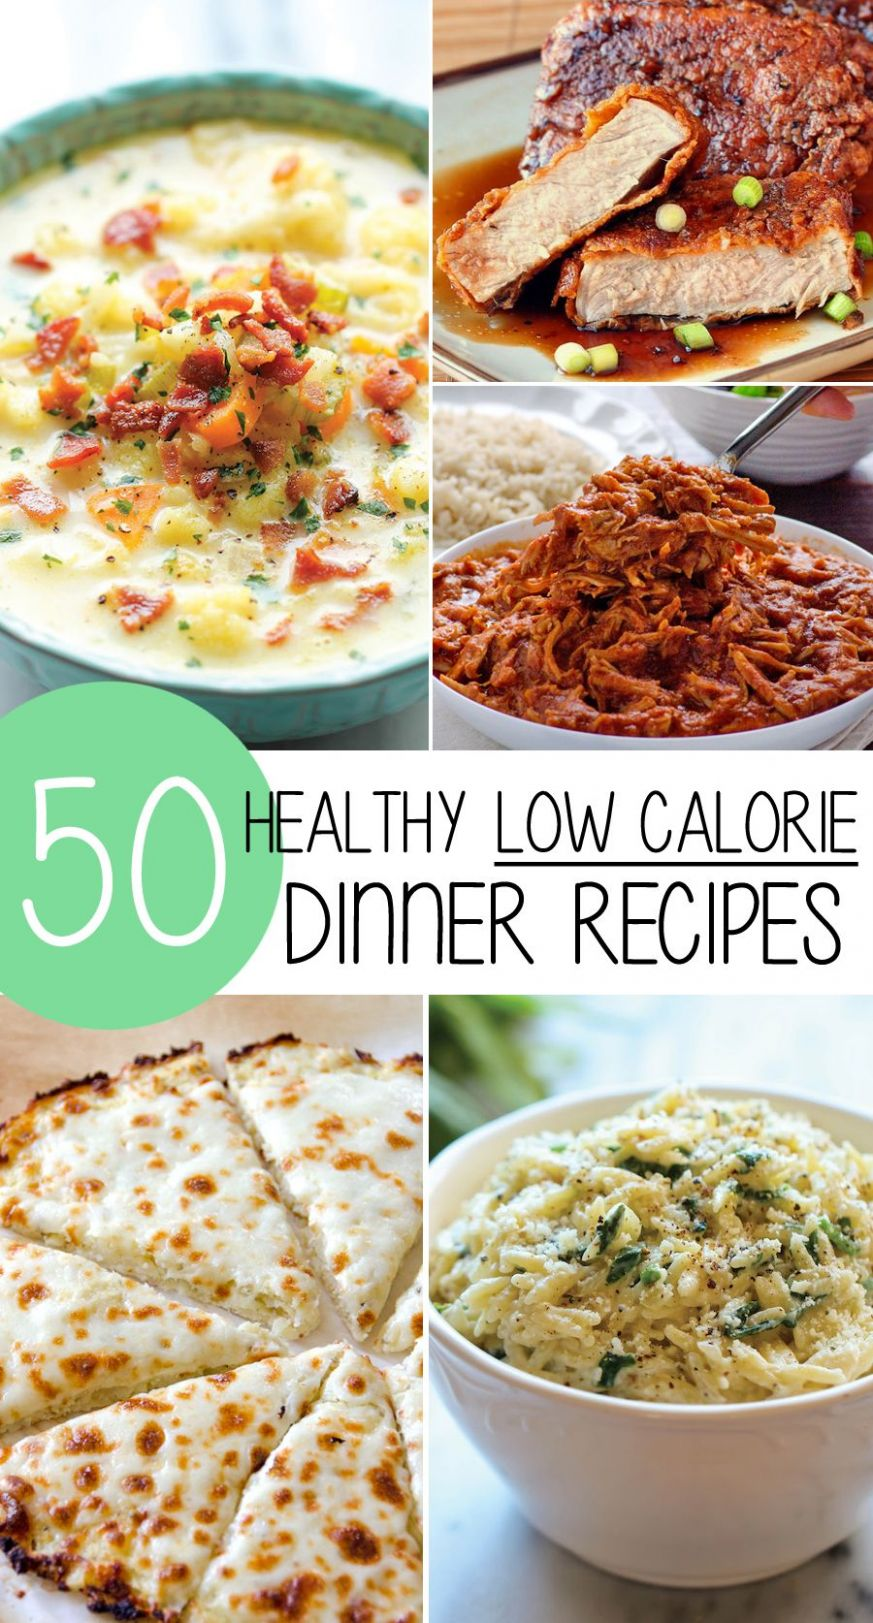 8 Healthy Low Calorie Weight Loss Dinner Recipes! | Recipes ..